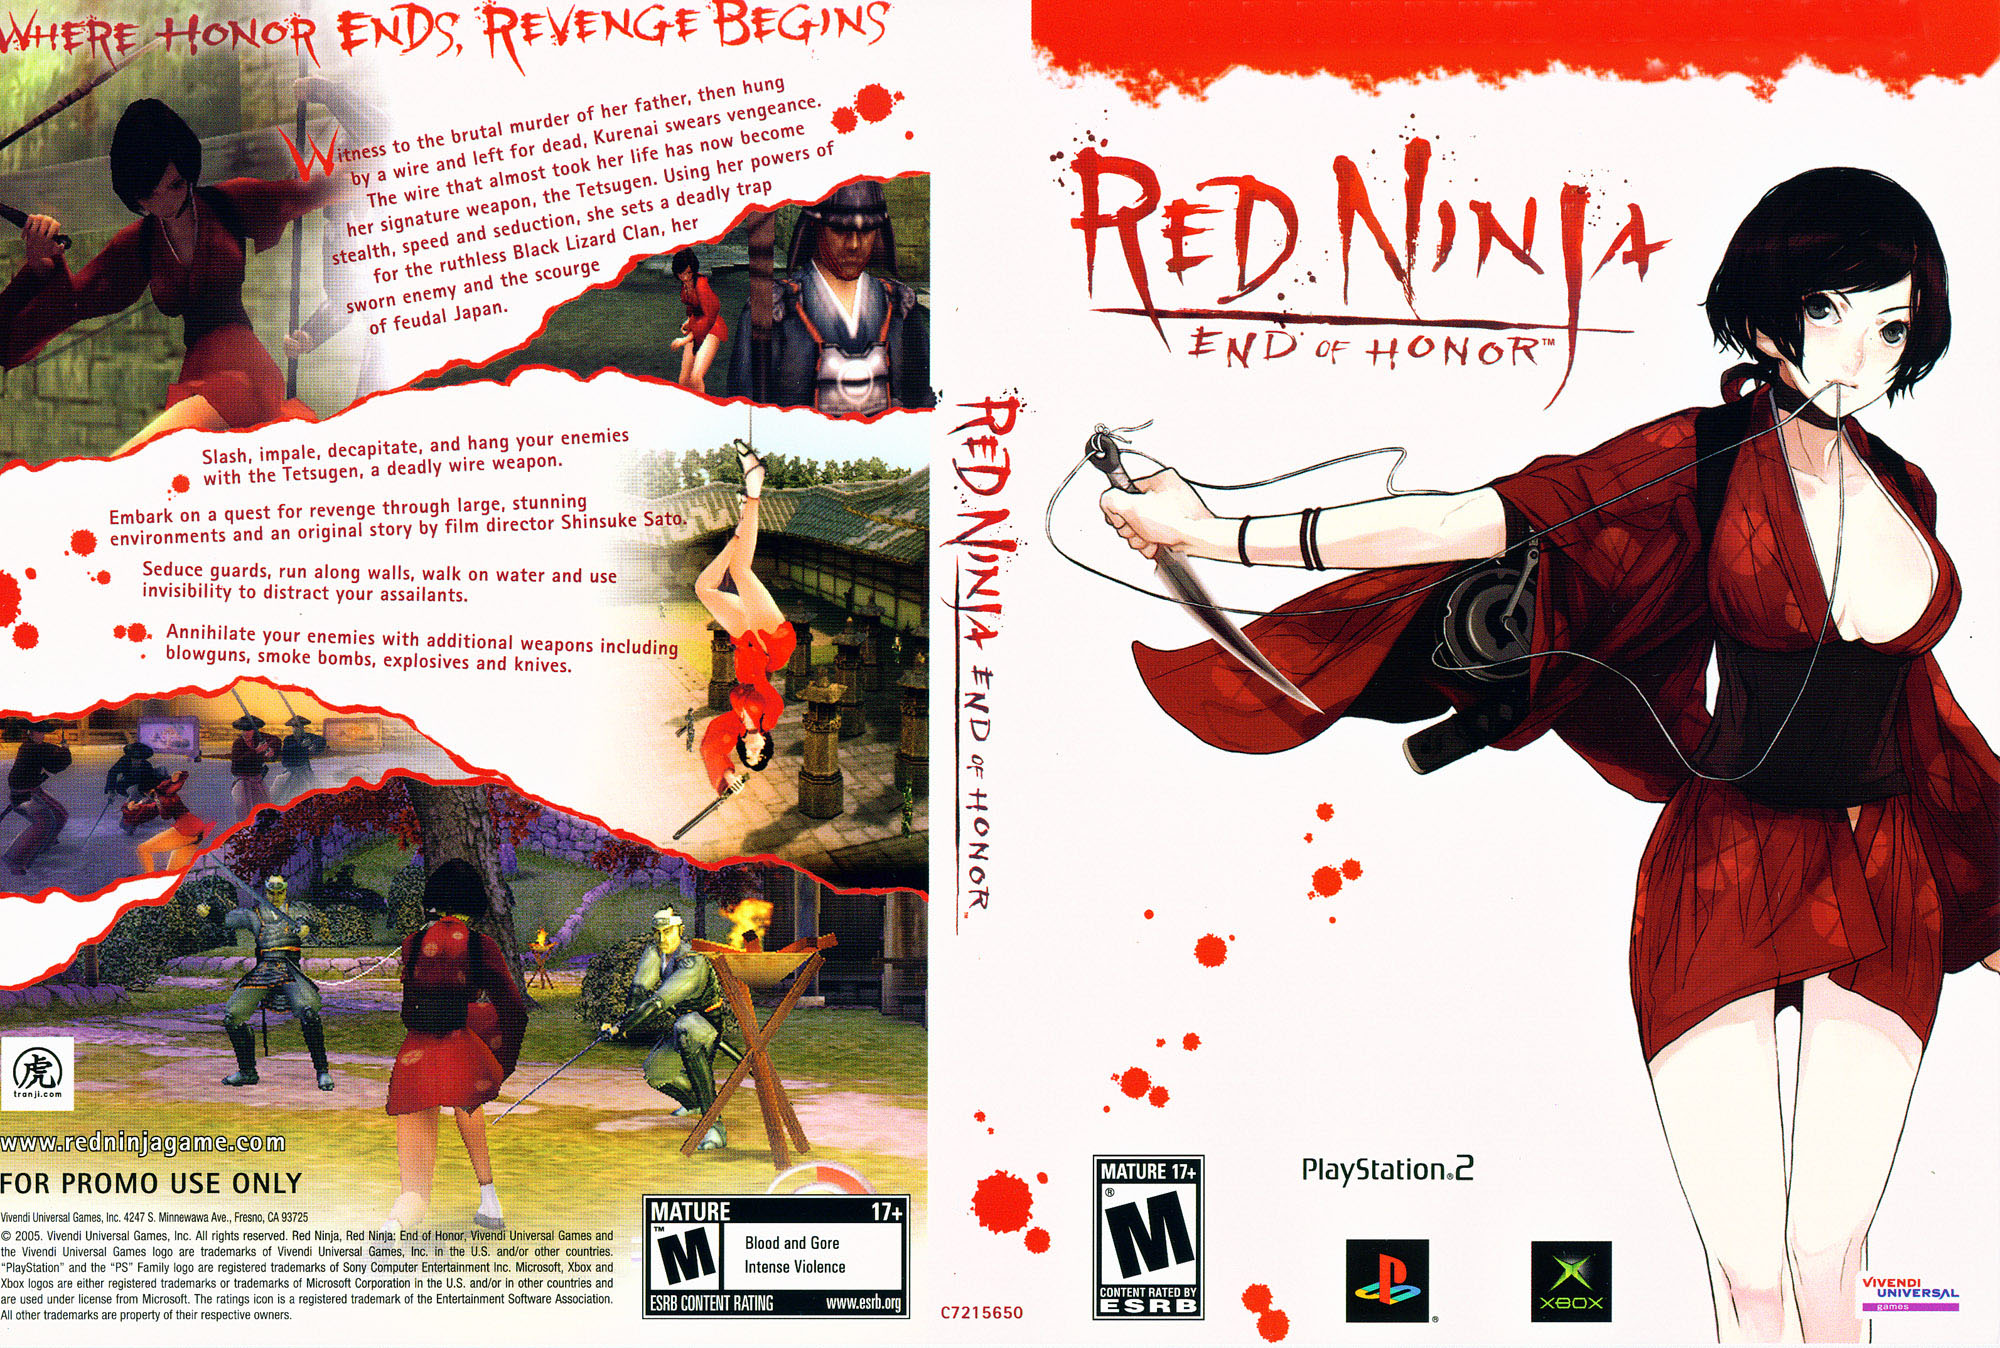 Ps2 red ninja nude xxx movie